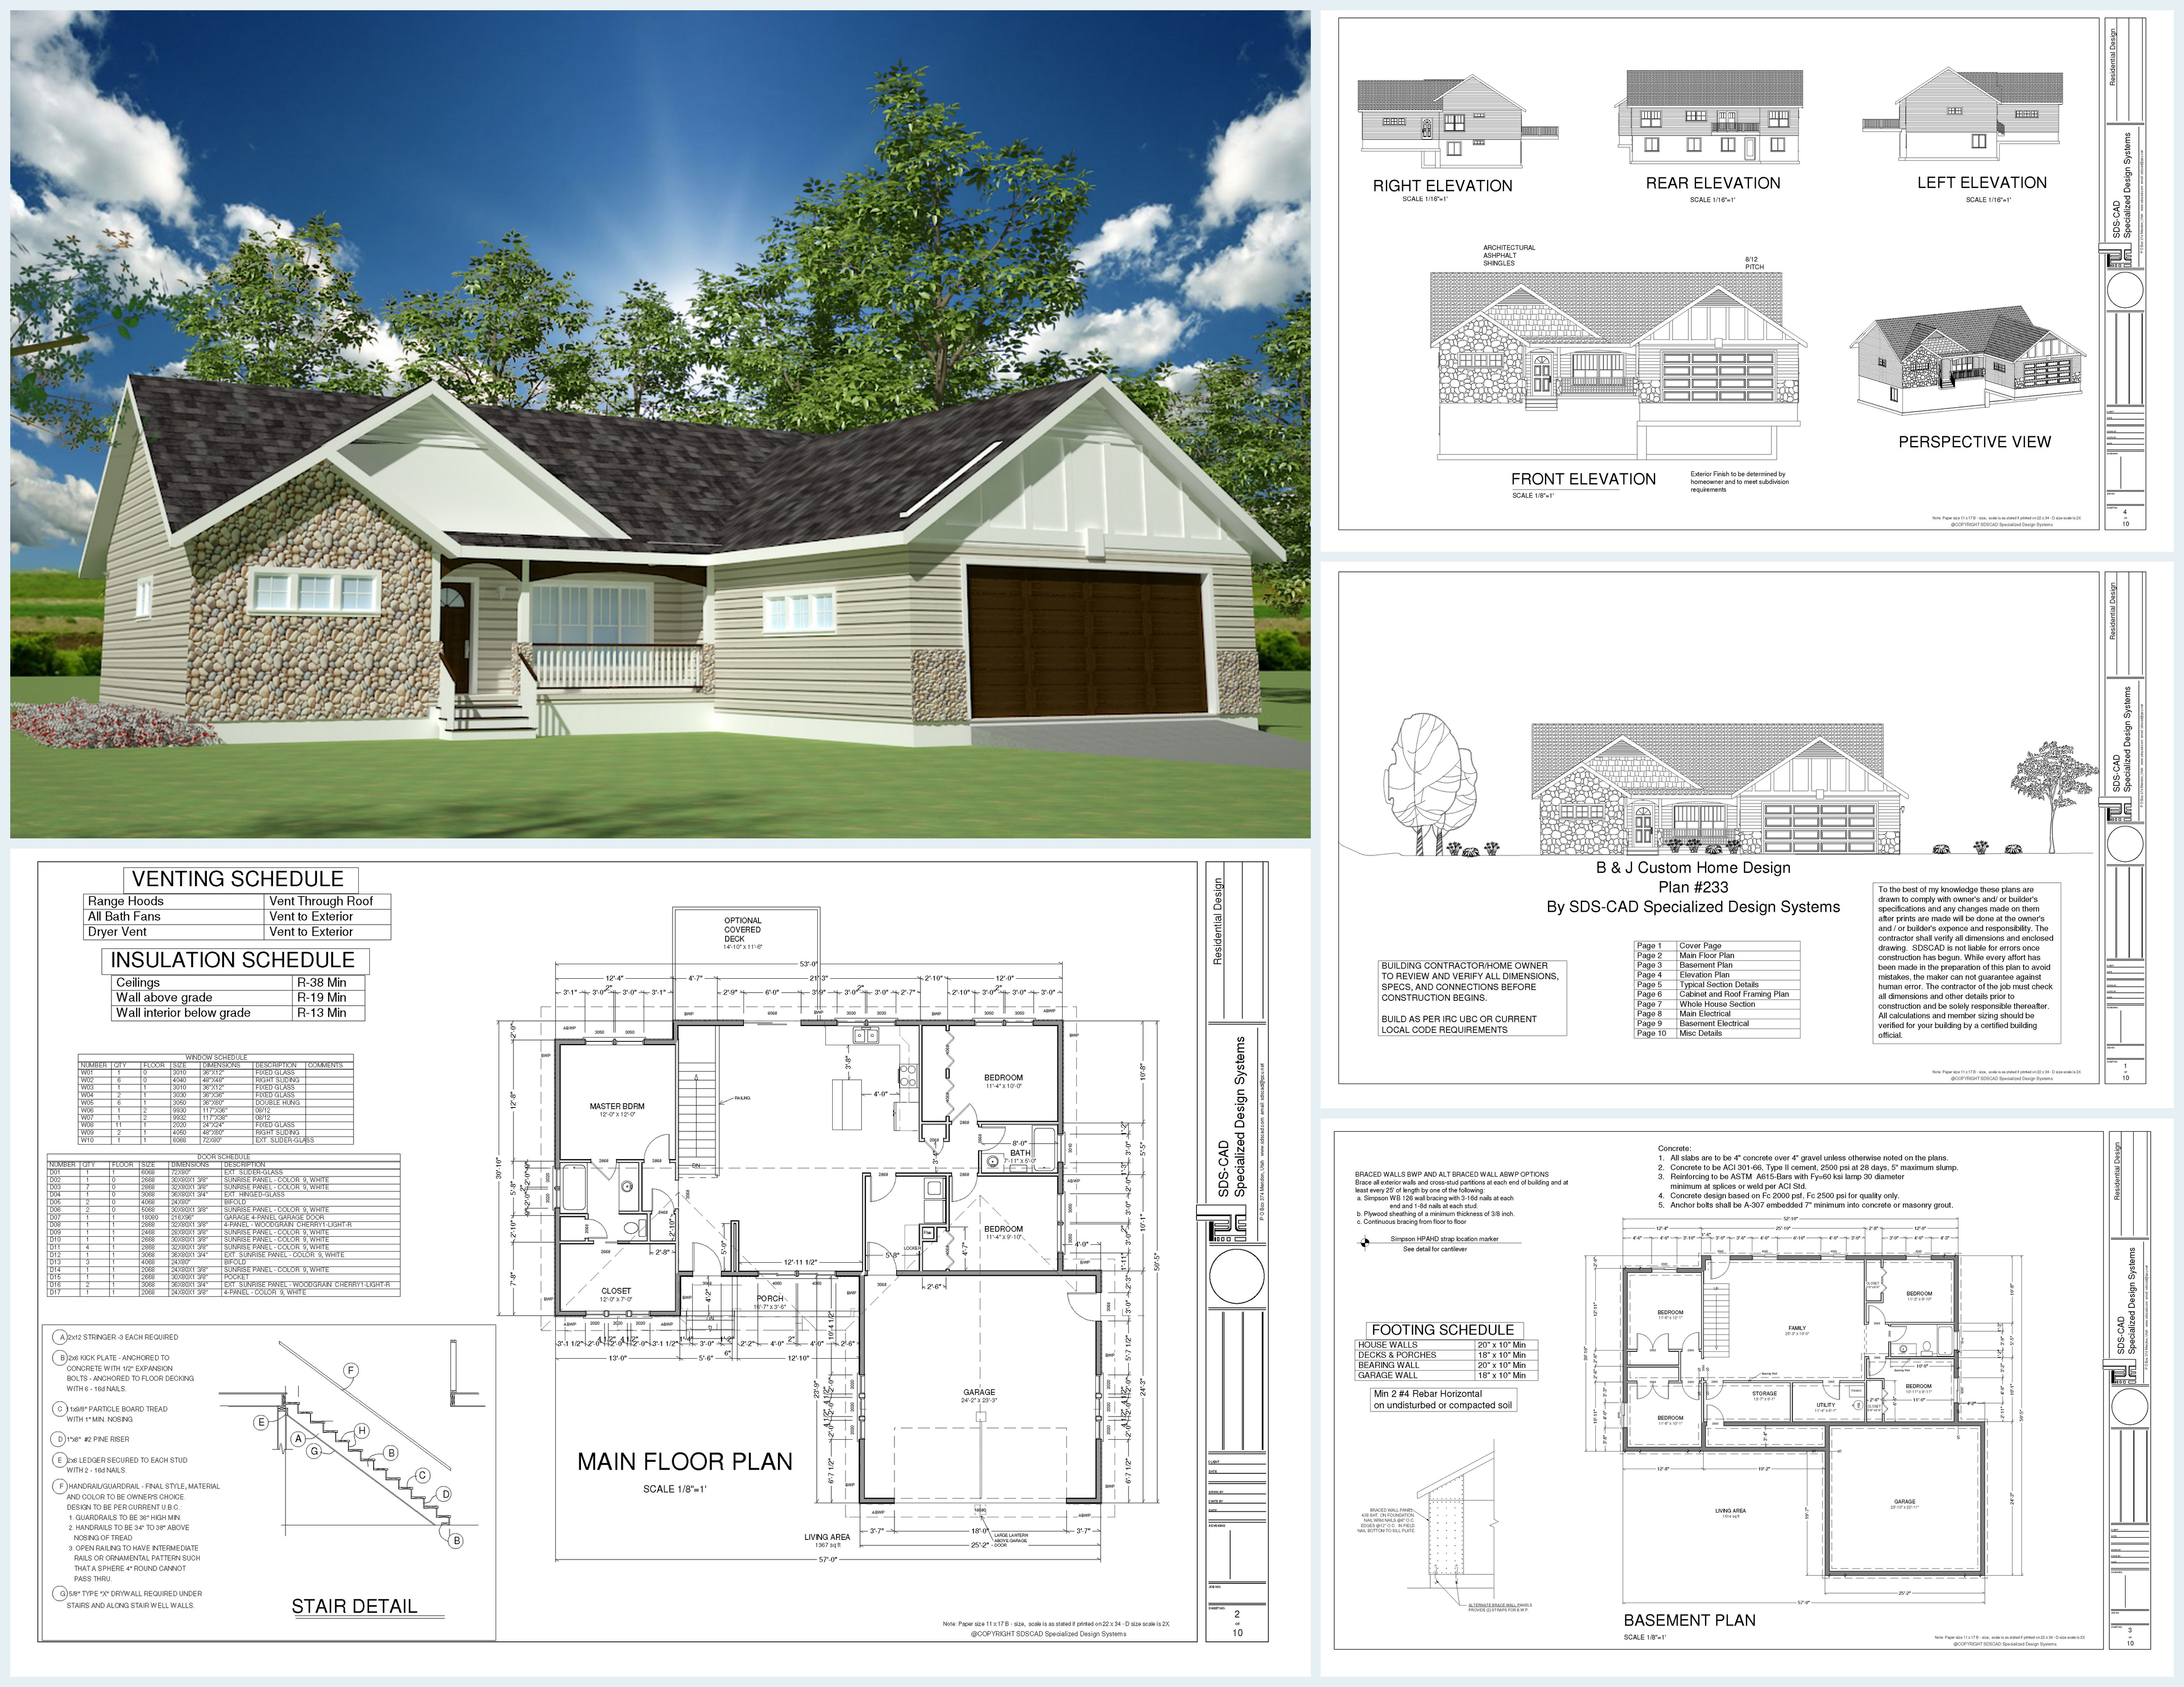 spec house plans. Spec house plans Custom  RV Garage Plans